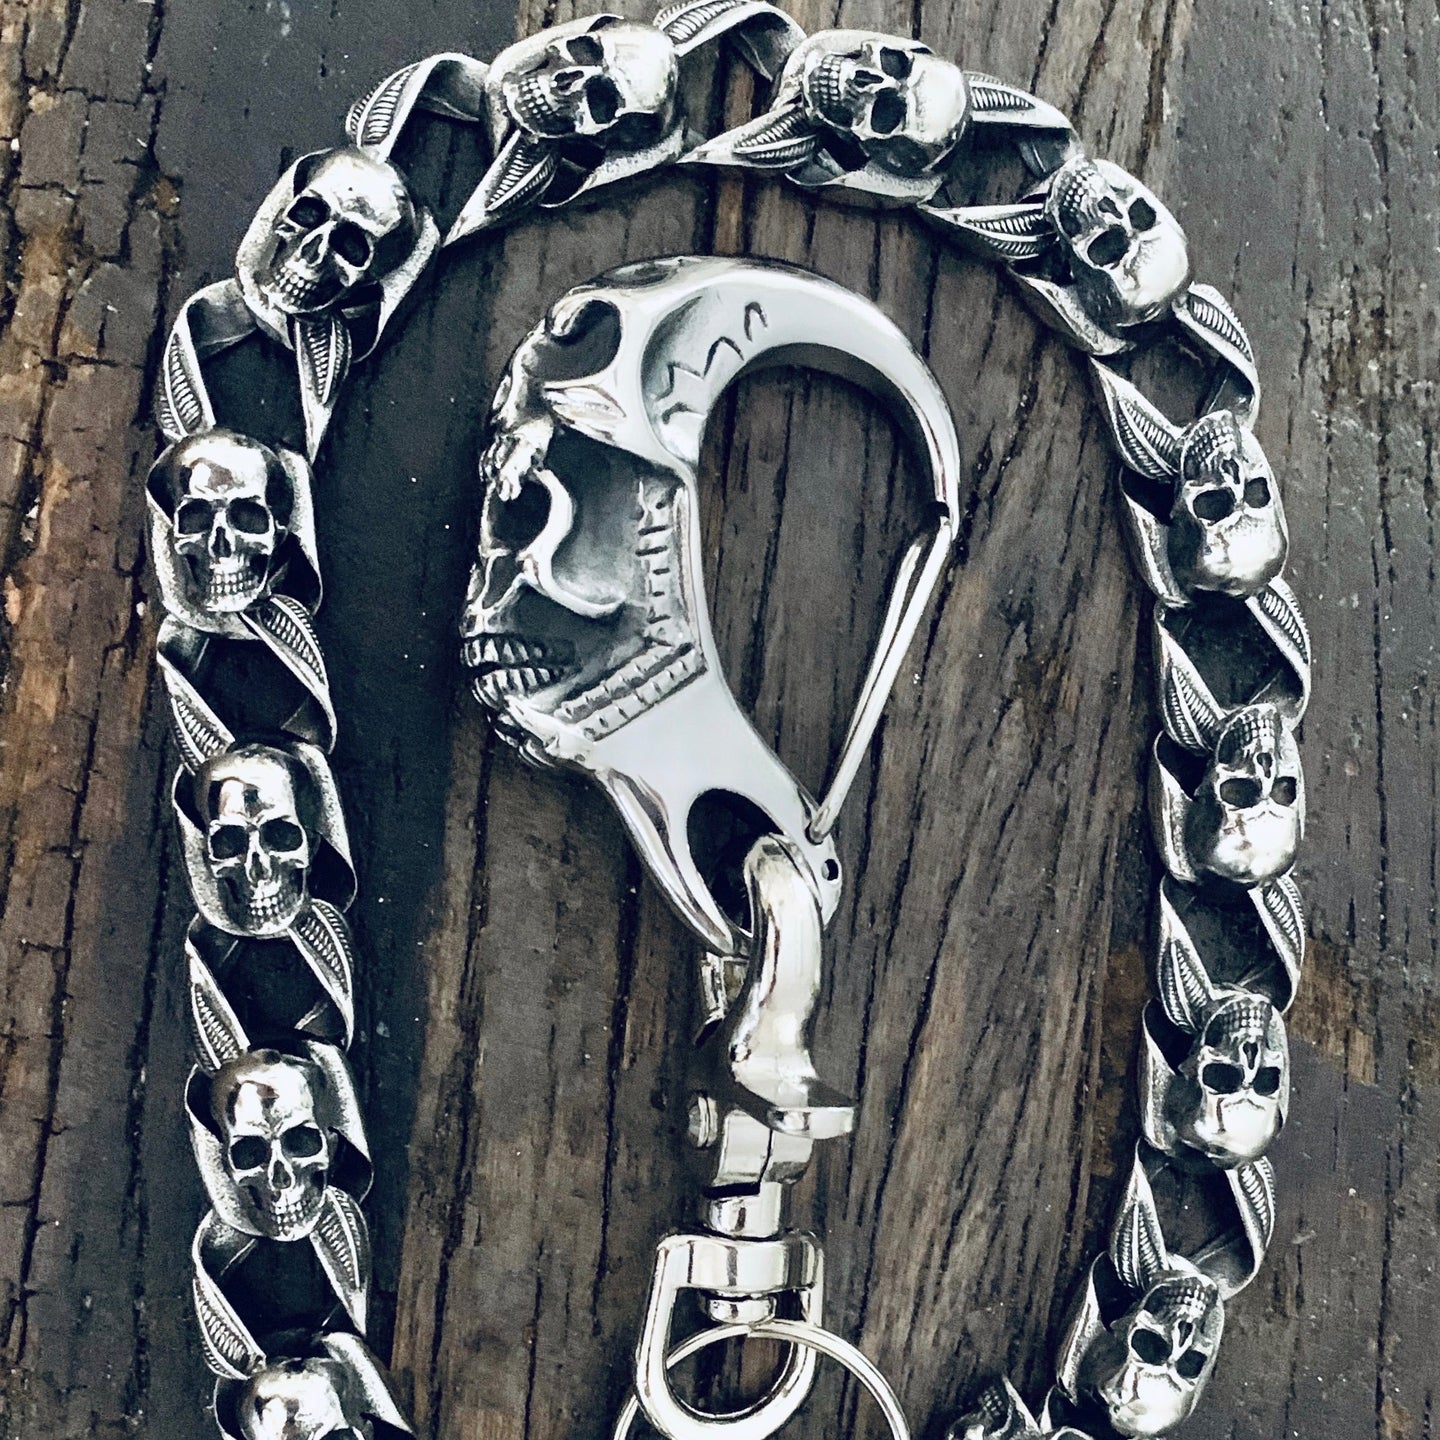 Sanity Jewelry stainless steel and biker wallet chain and badass wallet chains